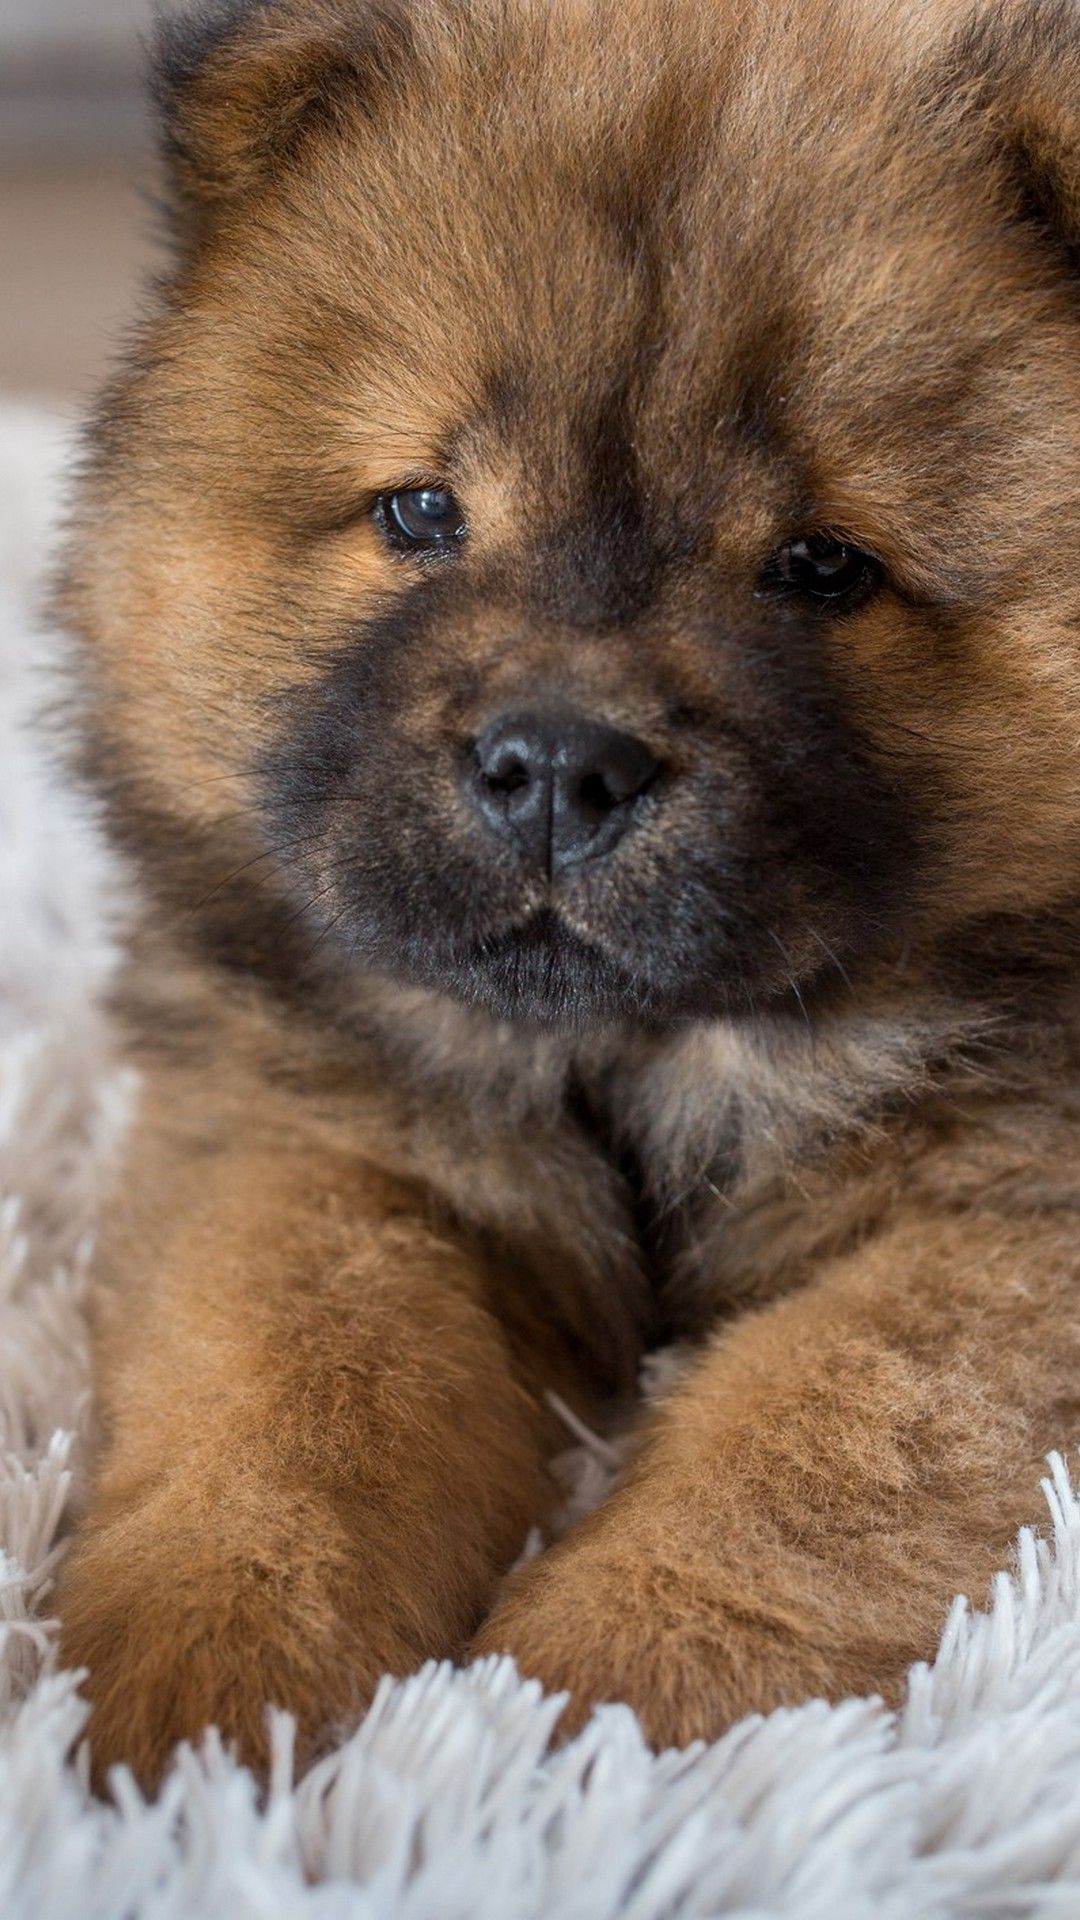 Pics Of Puppies Backgrounds For Android 2020 Android Wallpapers Chow Chow Wallpapers Wallpaper Cave In 2020 Puppy Backgrounds Black Chow Chow Puppies Puppy Wallpaper